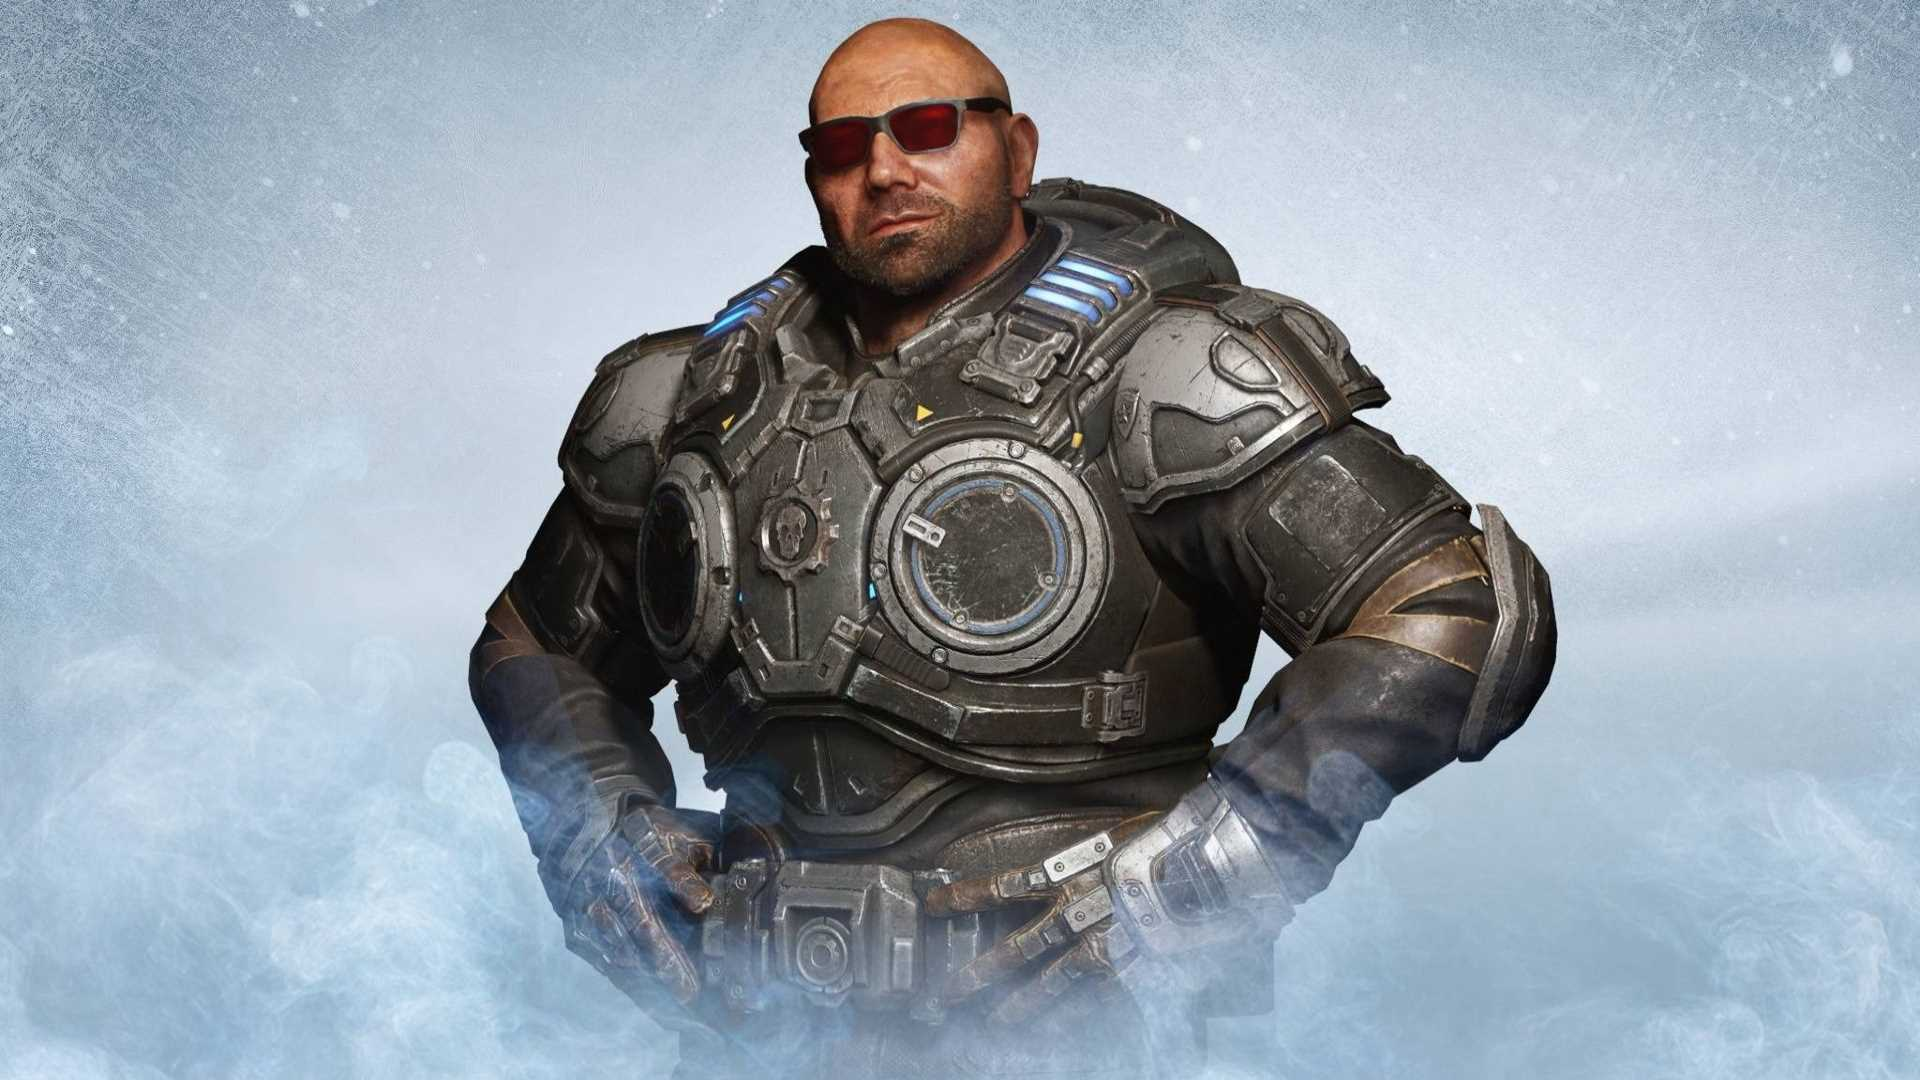 Xbox Game Pass April 2021 - Gears 5 Batista Marcus Skin